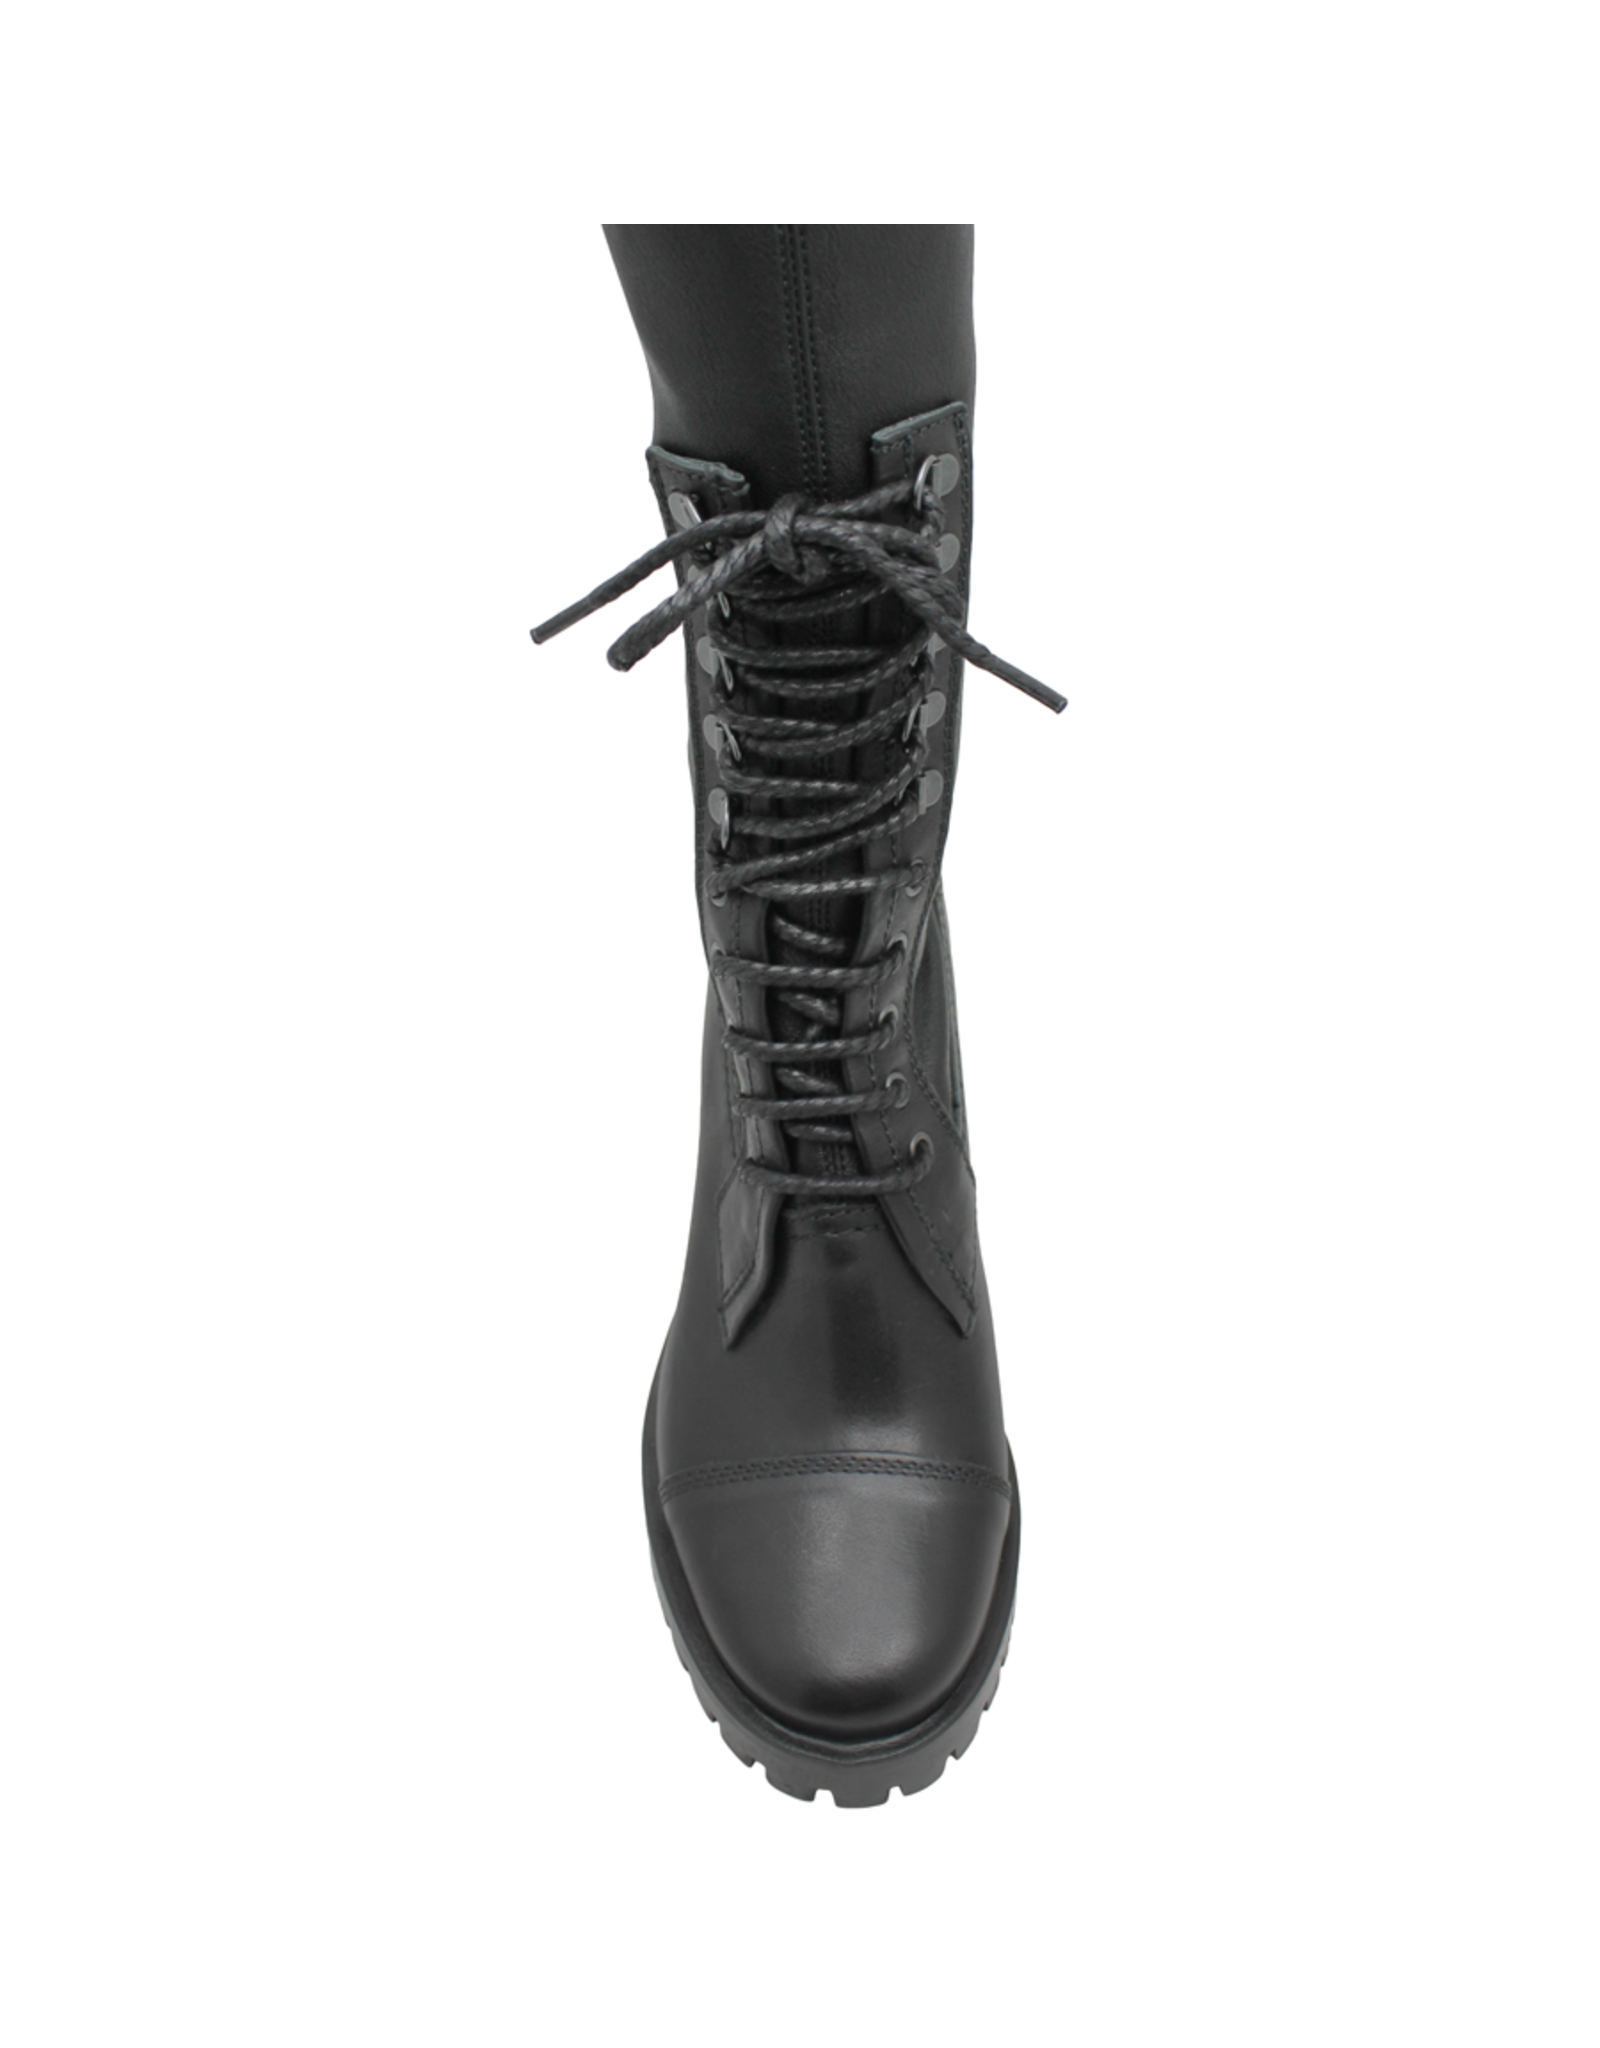 Now Now Black Lace-Up Stretch Knee Boot 6010